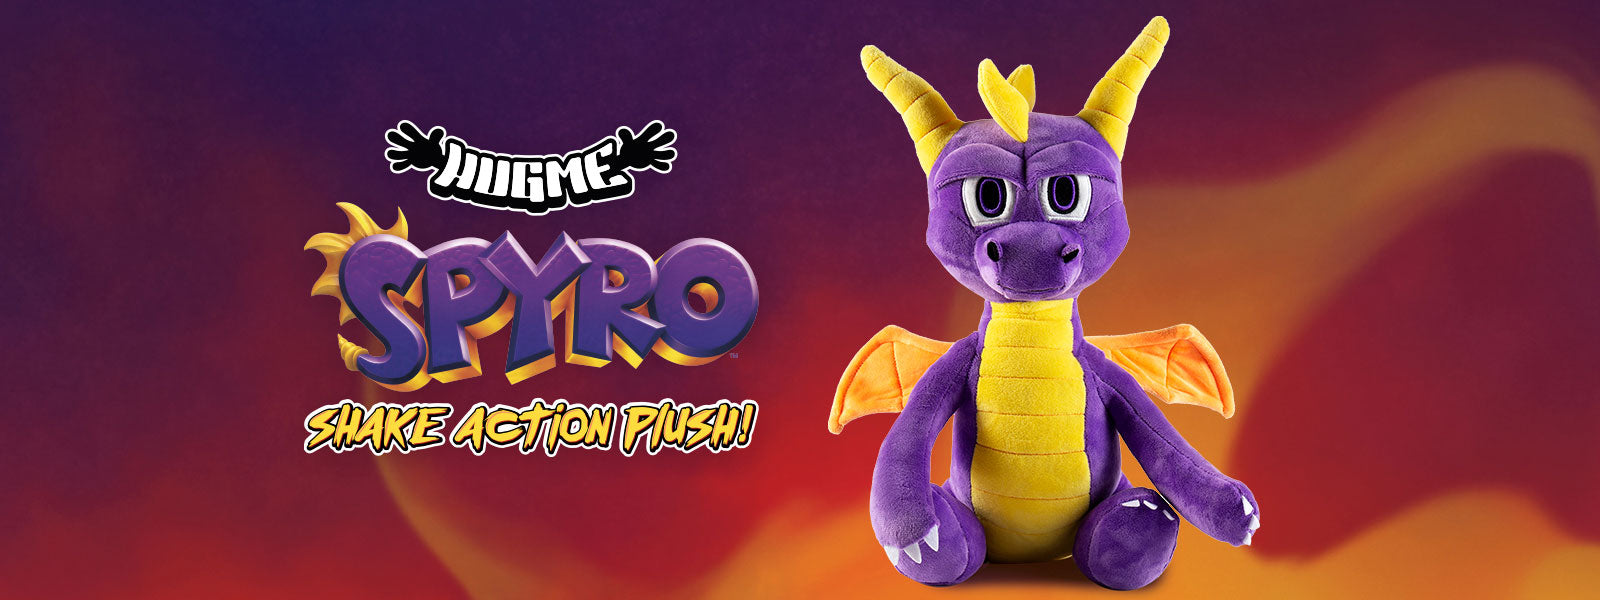 Spyro the Dragon Toys Stuffed Animal Plush Kidrobot